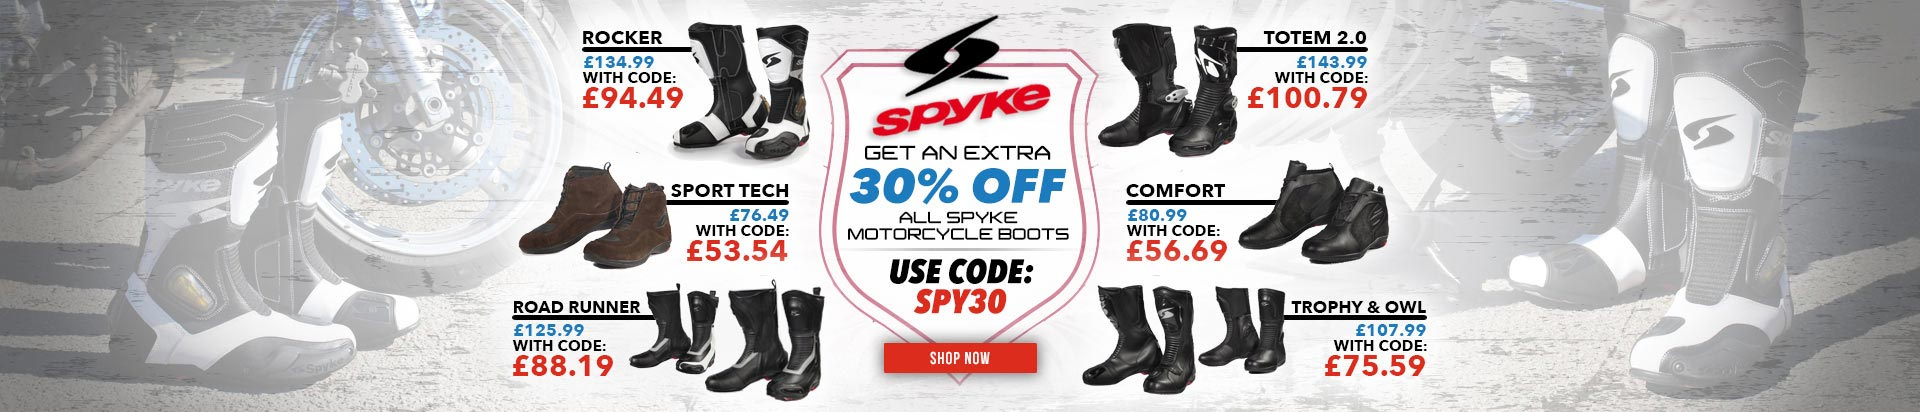 Spyke Boots 30% Off code SPY30!